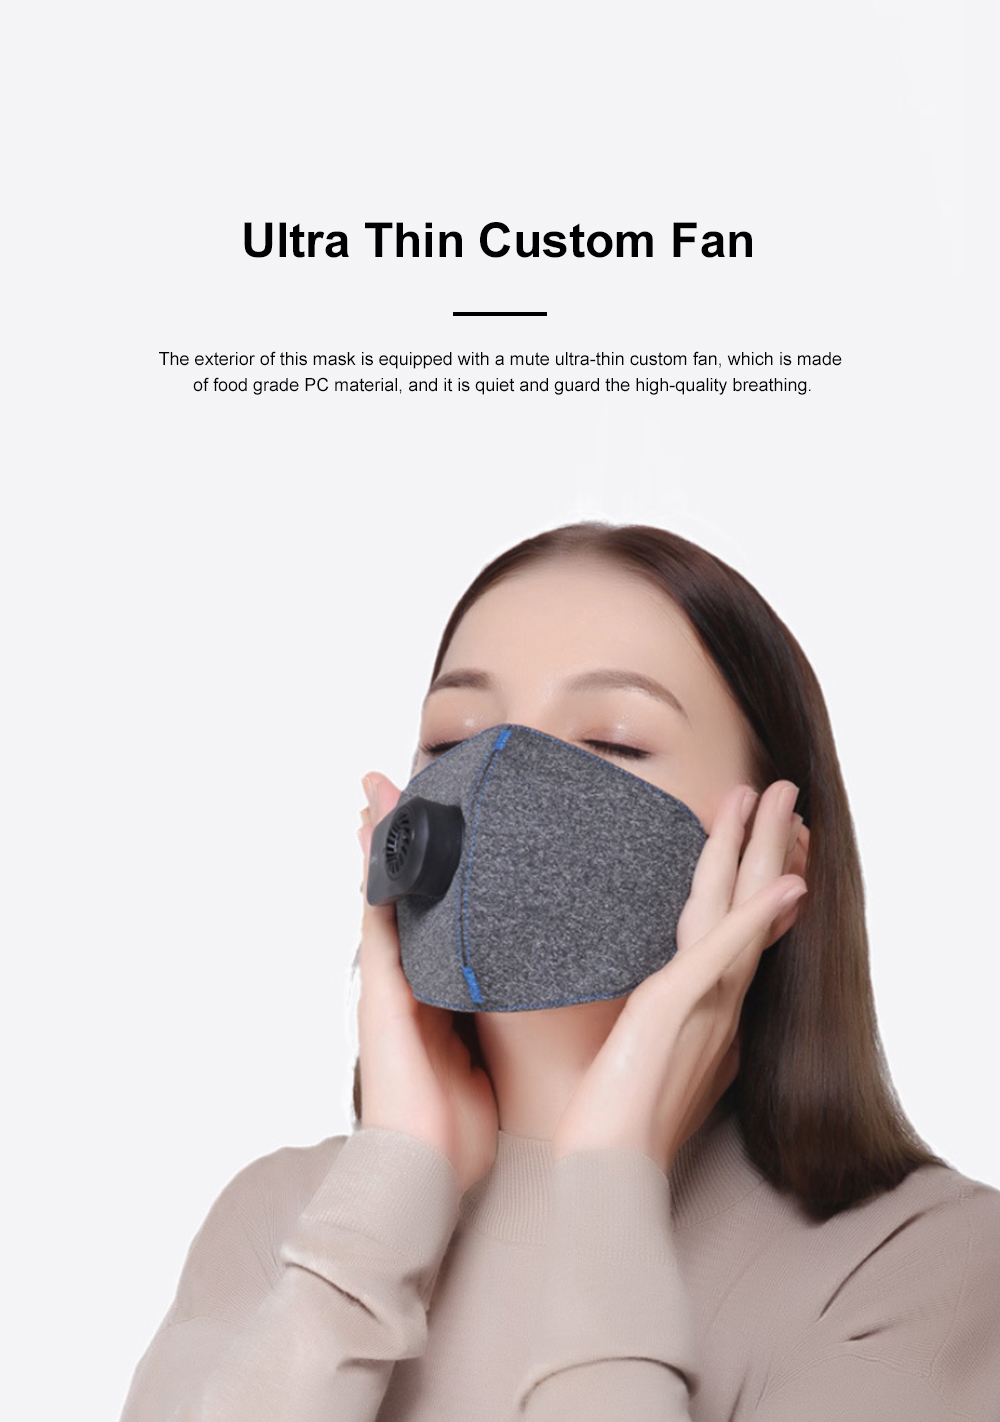 MI Purely Clean Air Haze Mask Anti-smog Anti Haze PM2.5 Dust Earhook Mask With Filter 2019 NEW 5